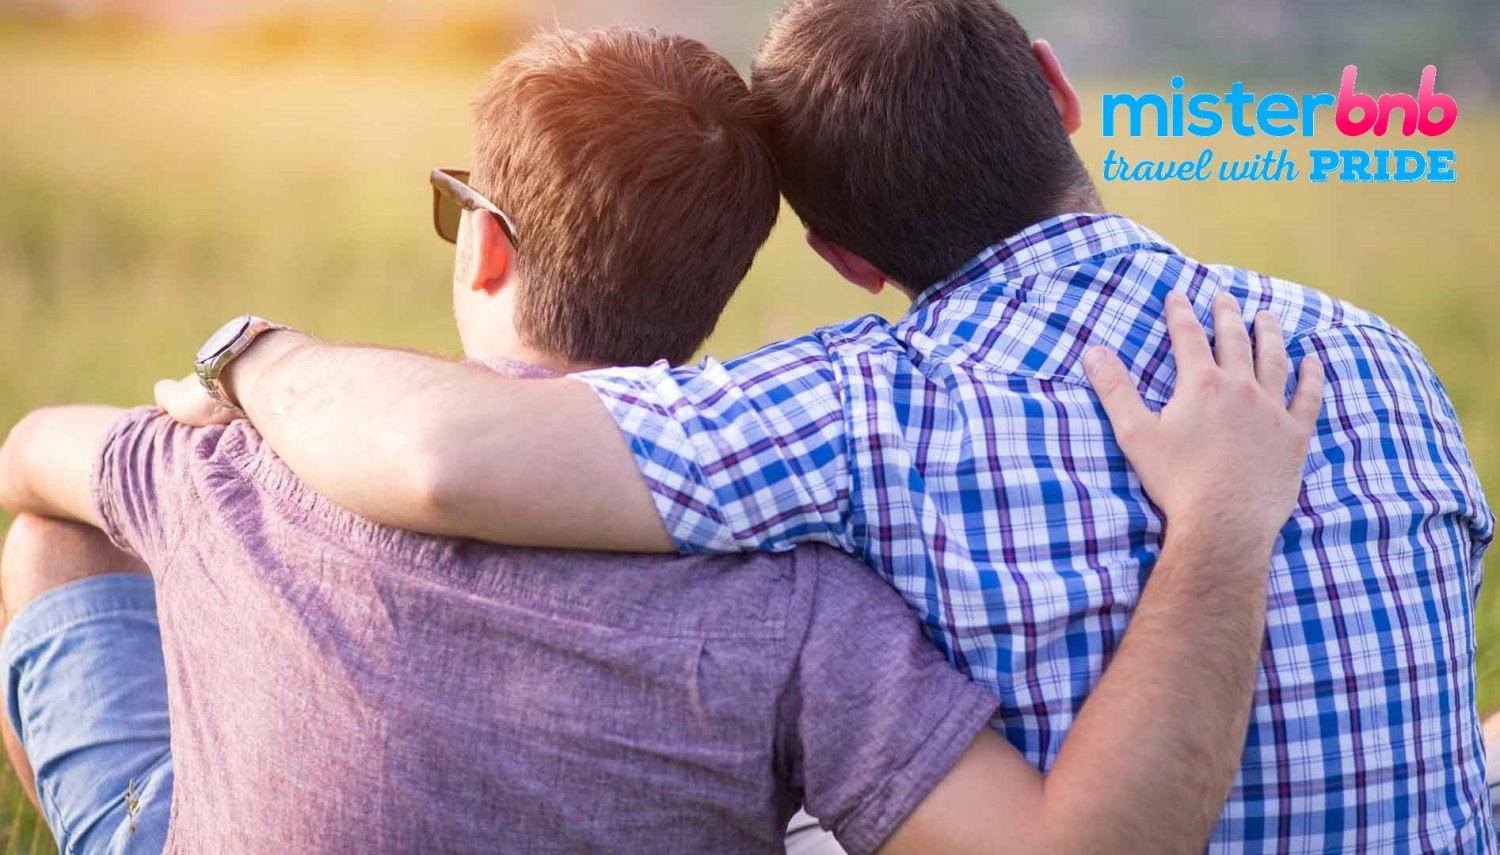 new app for gay travel misterbnb